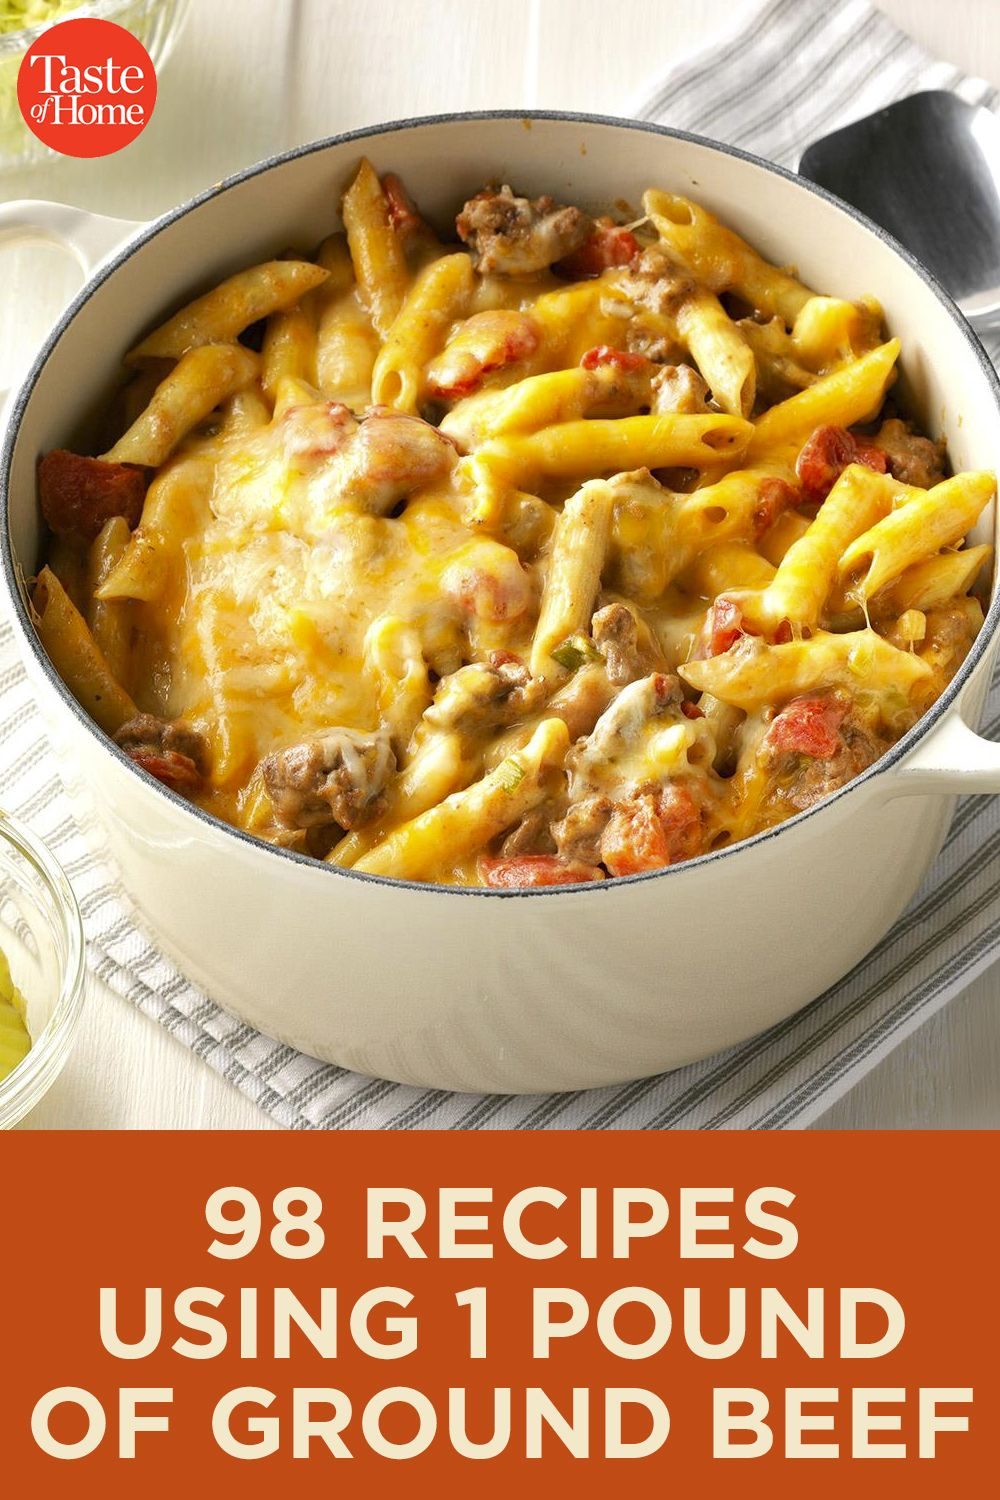 101 Recipes Using 1 Pound Of Ground Beef In 2020 Beef Recipes Beef Dinner Dinner Recipes